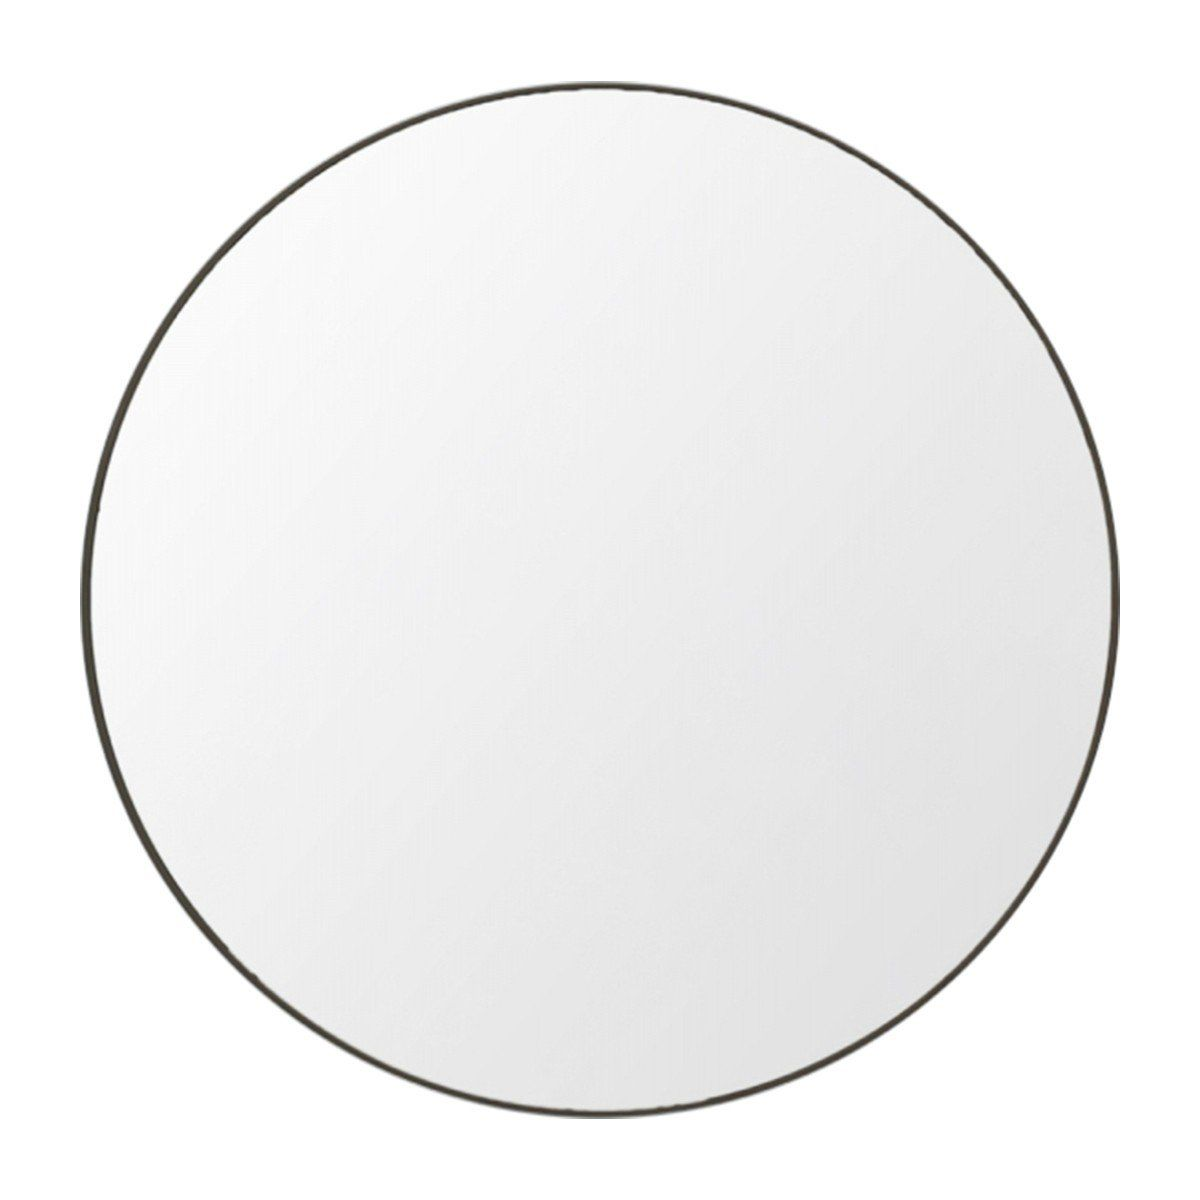 1200x1200 Flynn Round Mirror (Black) Round Mirrors, Mirrors Online And Middle